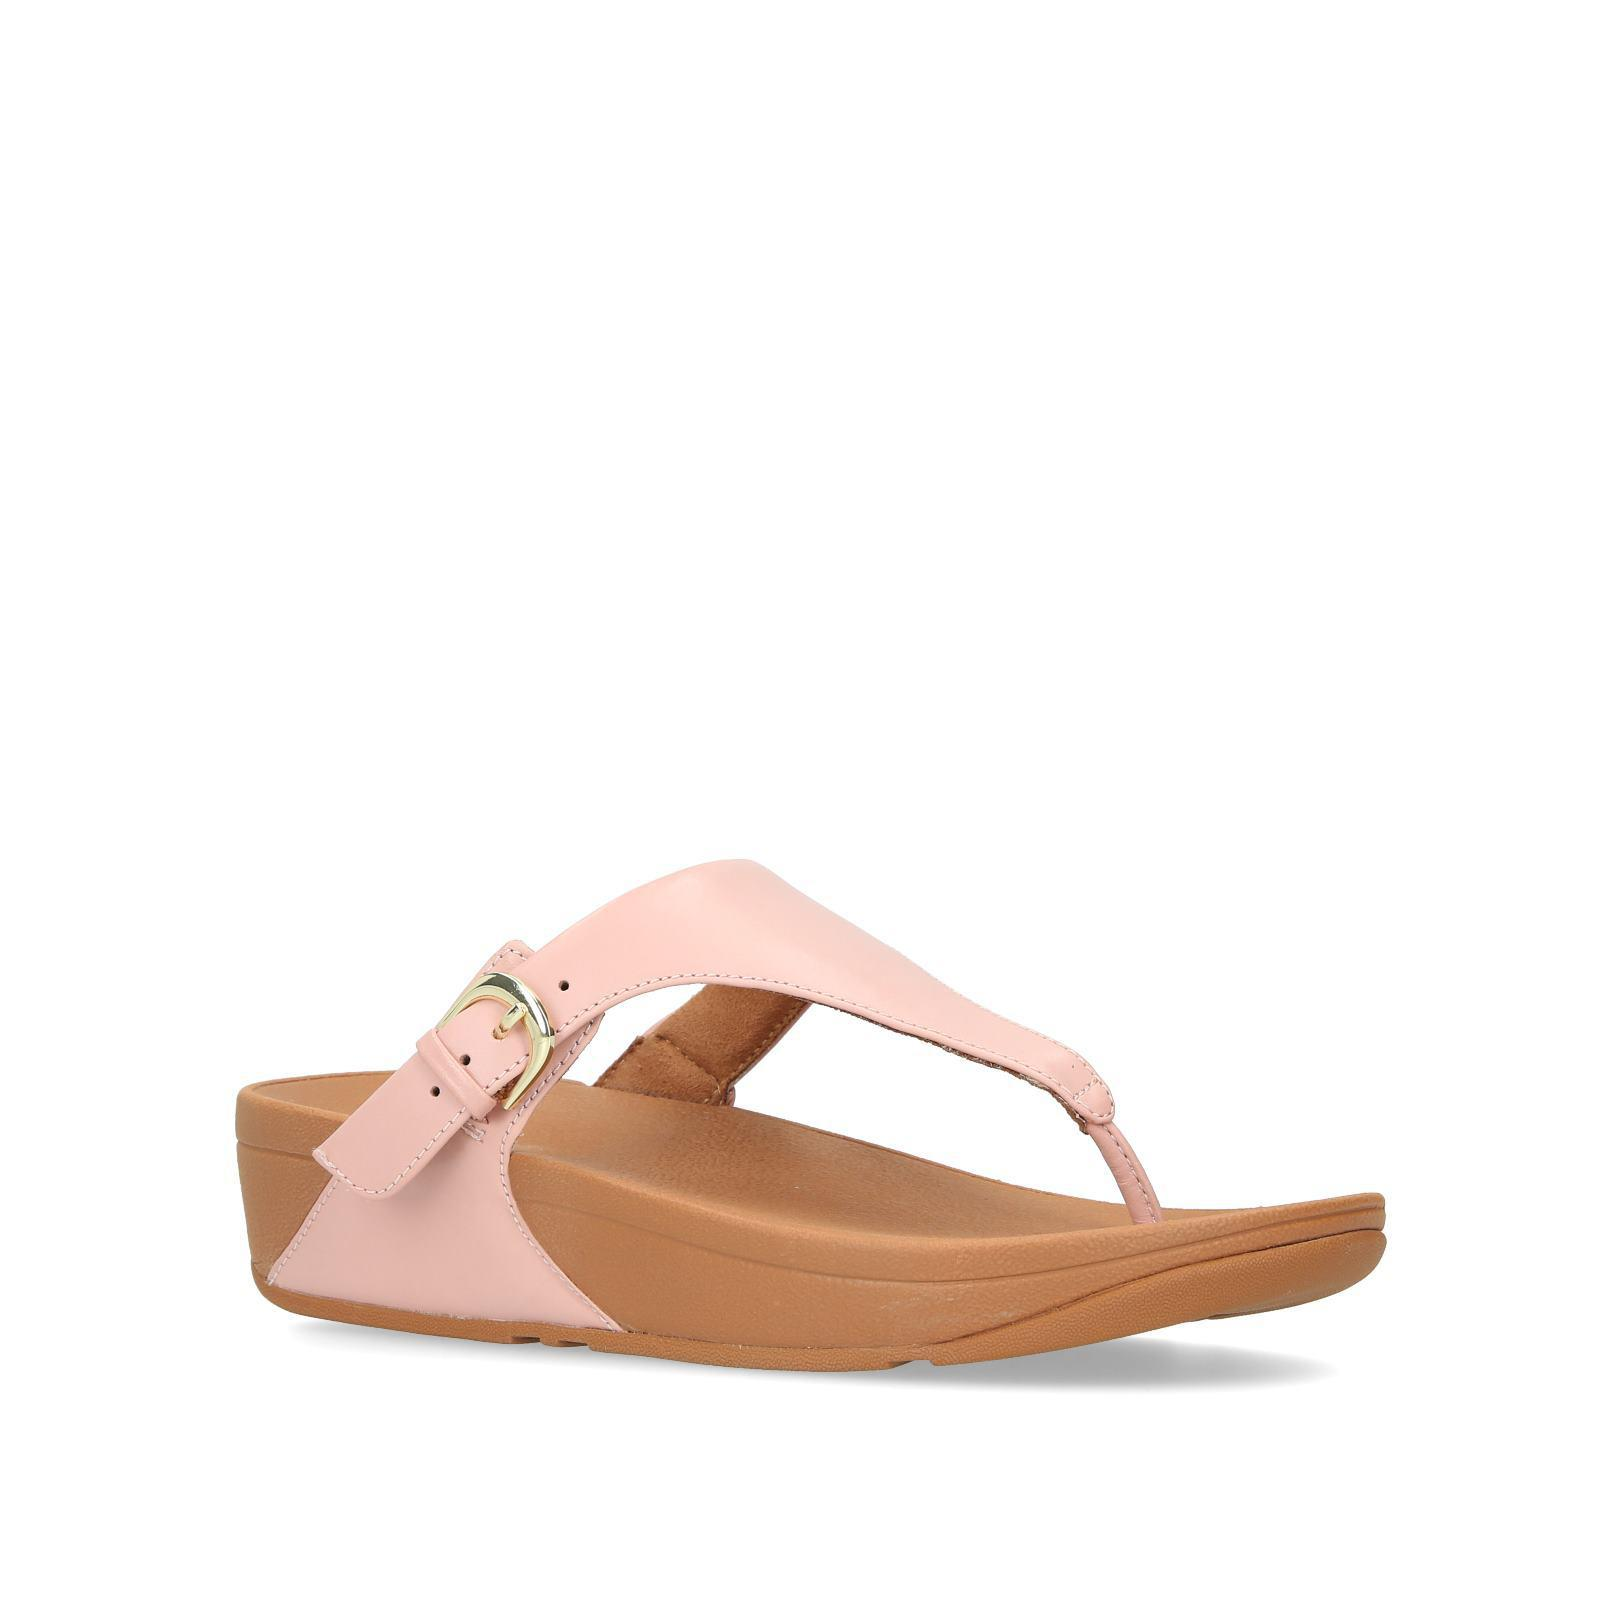 dd100ccbf56 Fitflop Womens Dusky Pink Skinnytm Sandals in Pink - Lyst